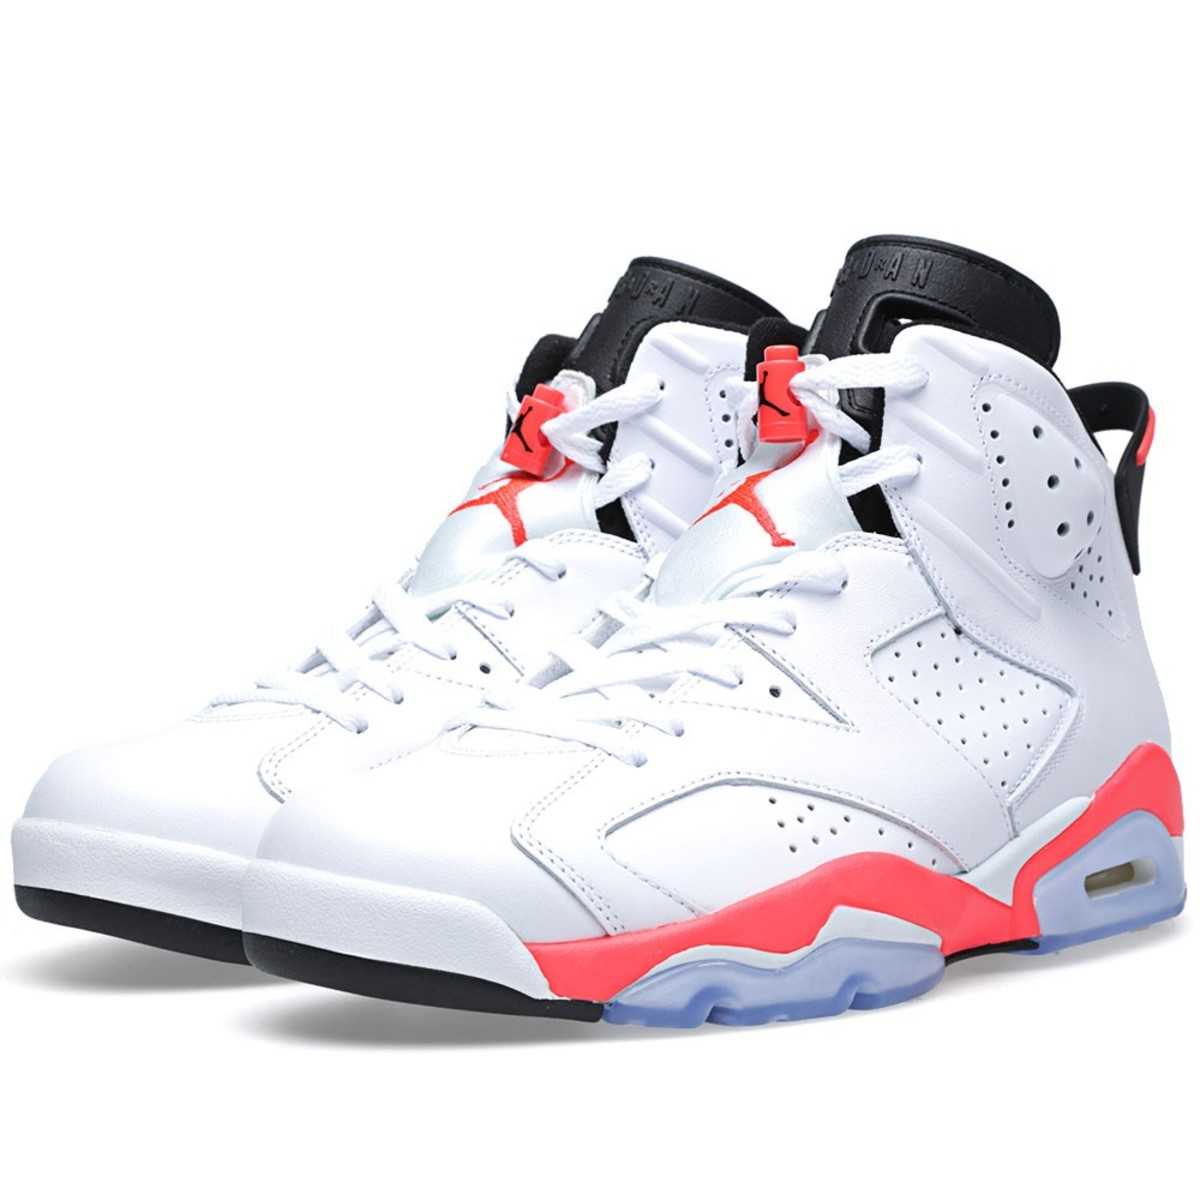 d61edc24df7 Air Jordan Infrared 6 White